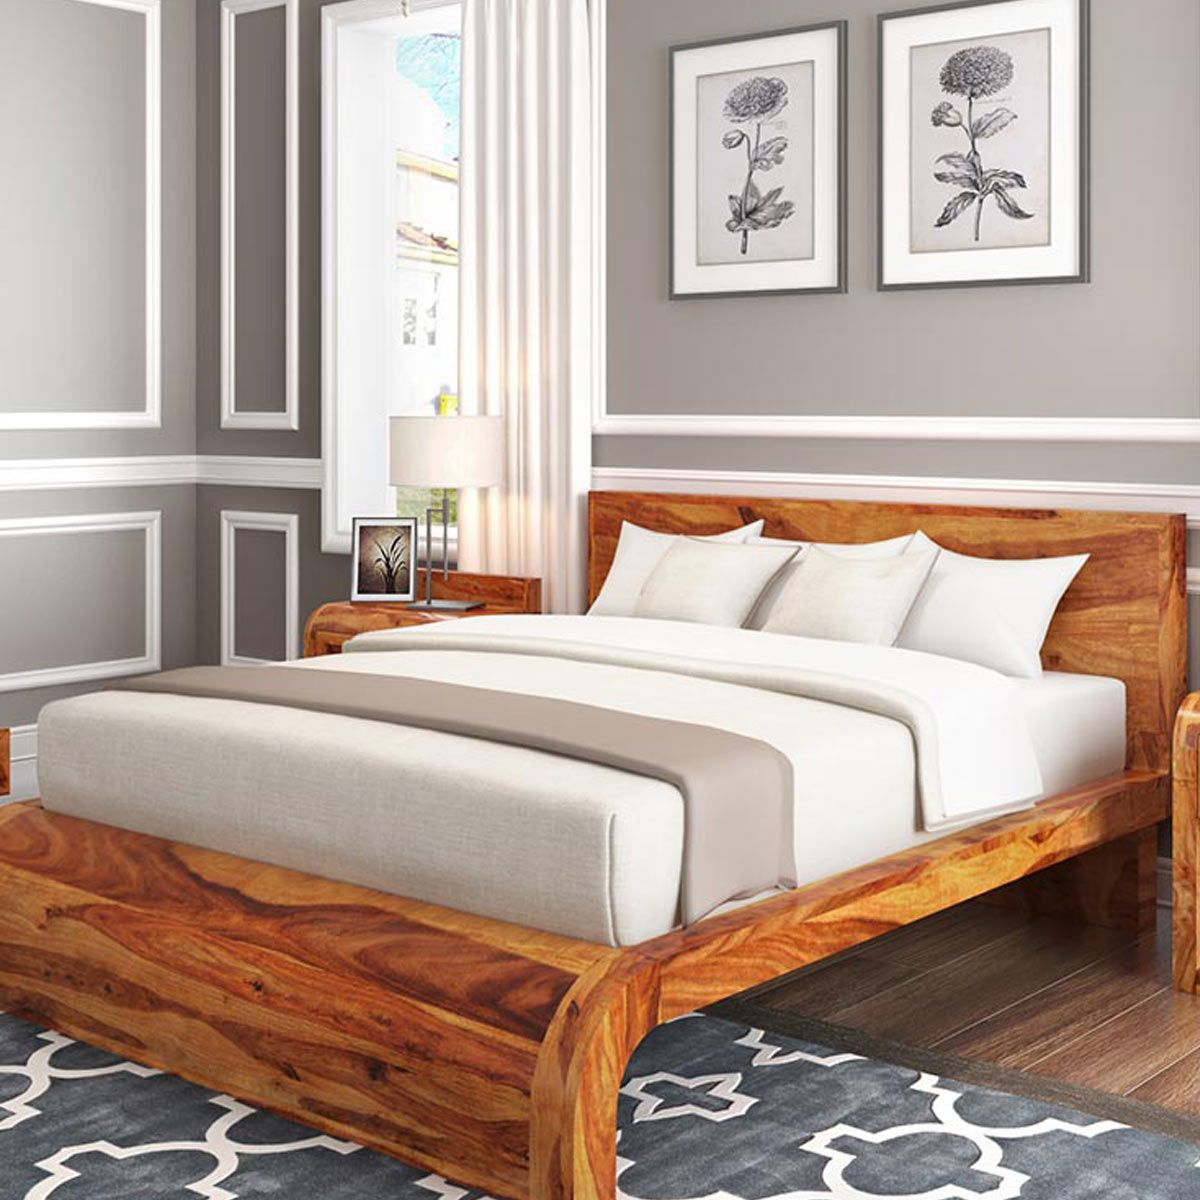 Rebecca Solid Wood Curved Platform Bed Wood Bedroom Sets Wood Bed Design Wood Platform Bed